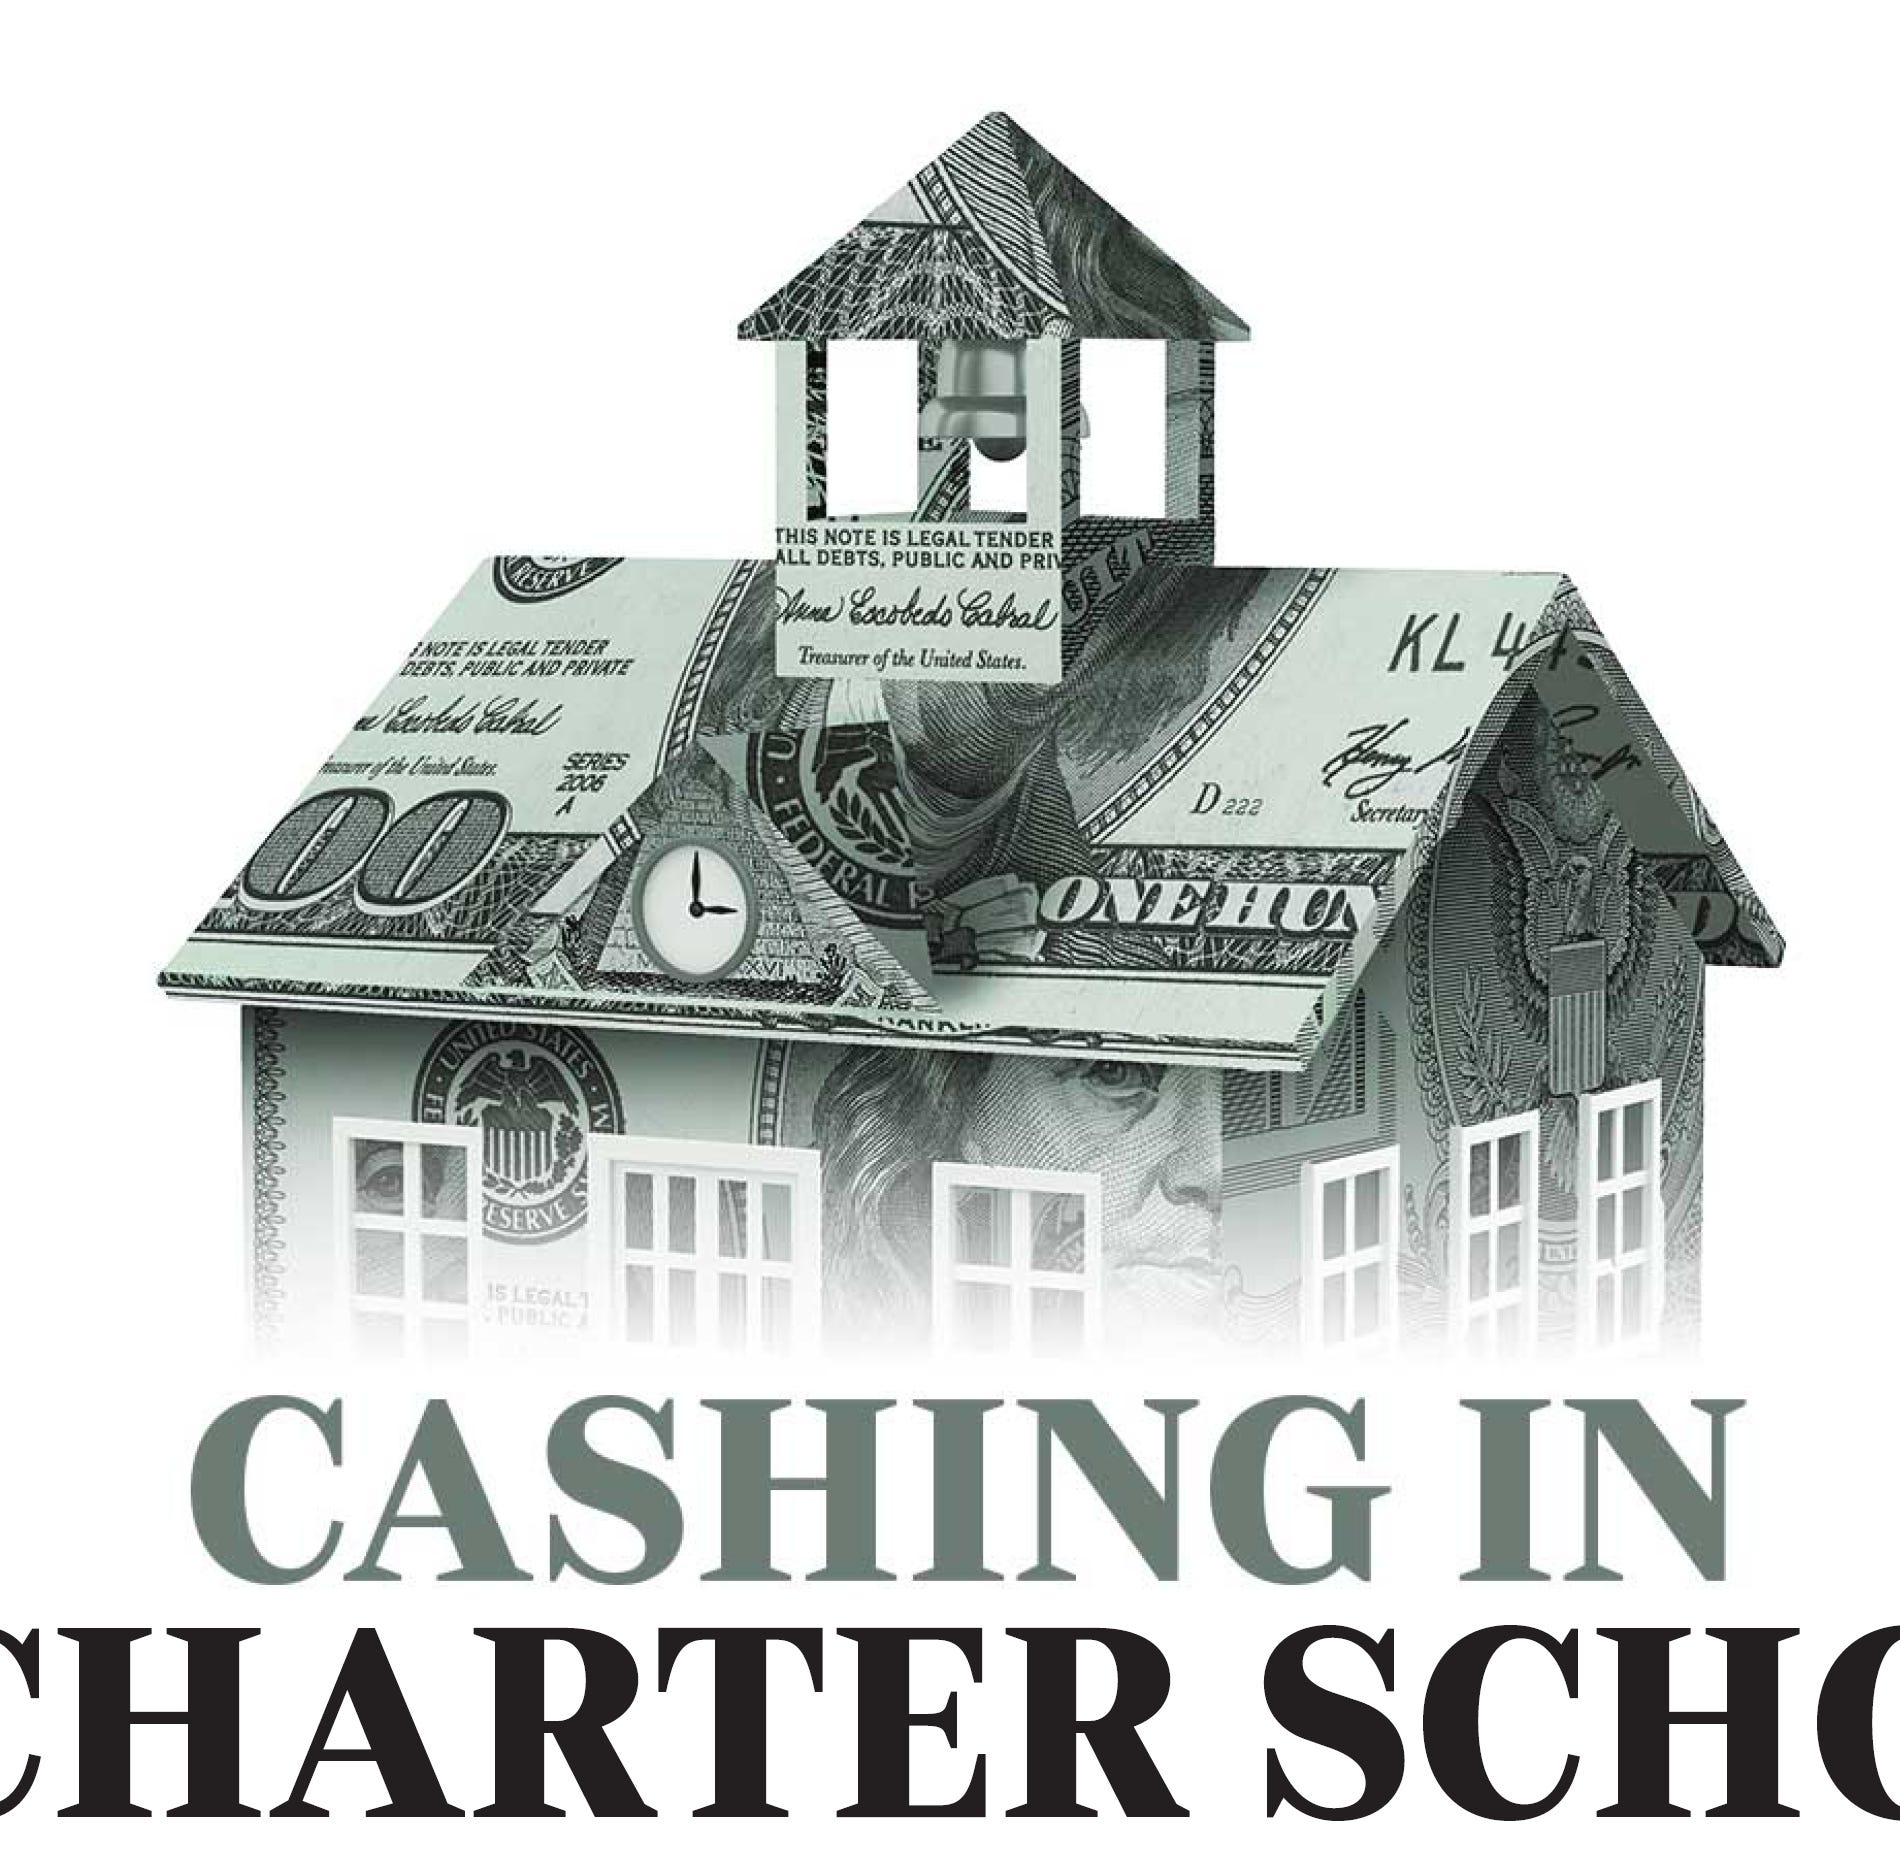 Millions of your tax dollars have disappeared into NJ's flawed charter school experiment